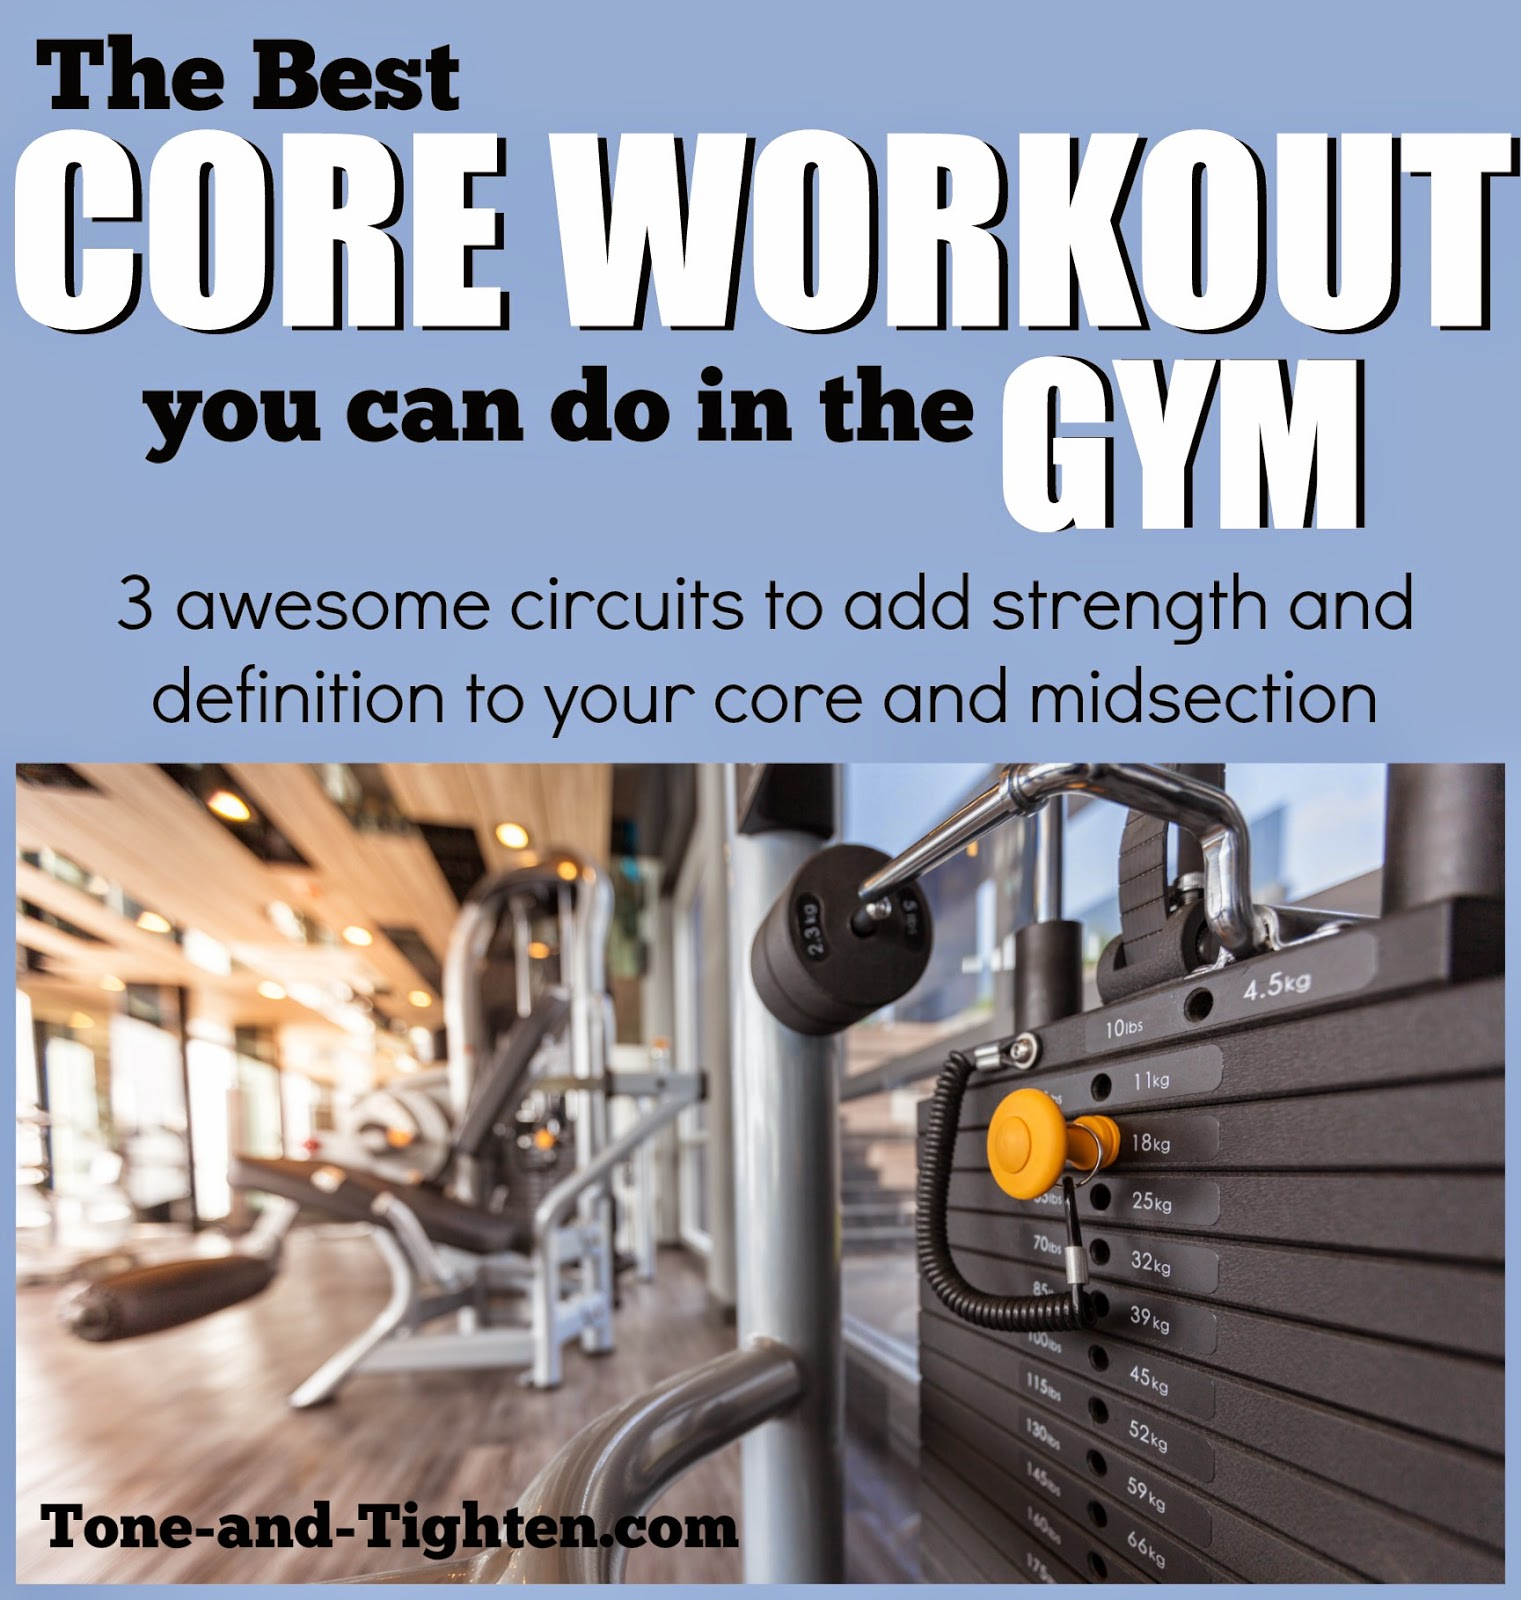 Best core workout you can do in the gym. The best core gym exercises from Tone-and-Tighten.com